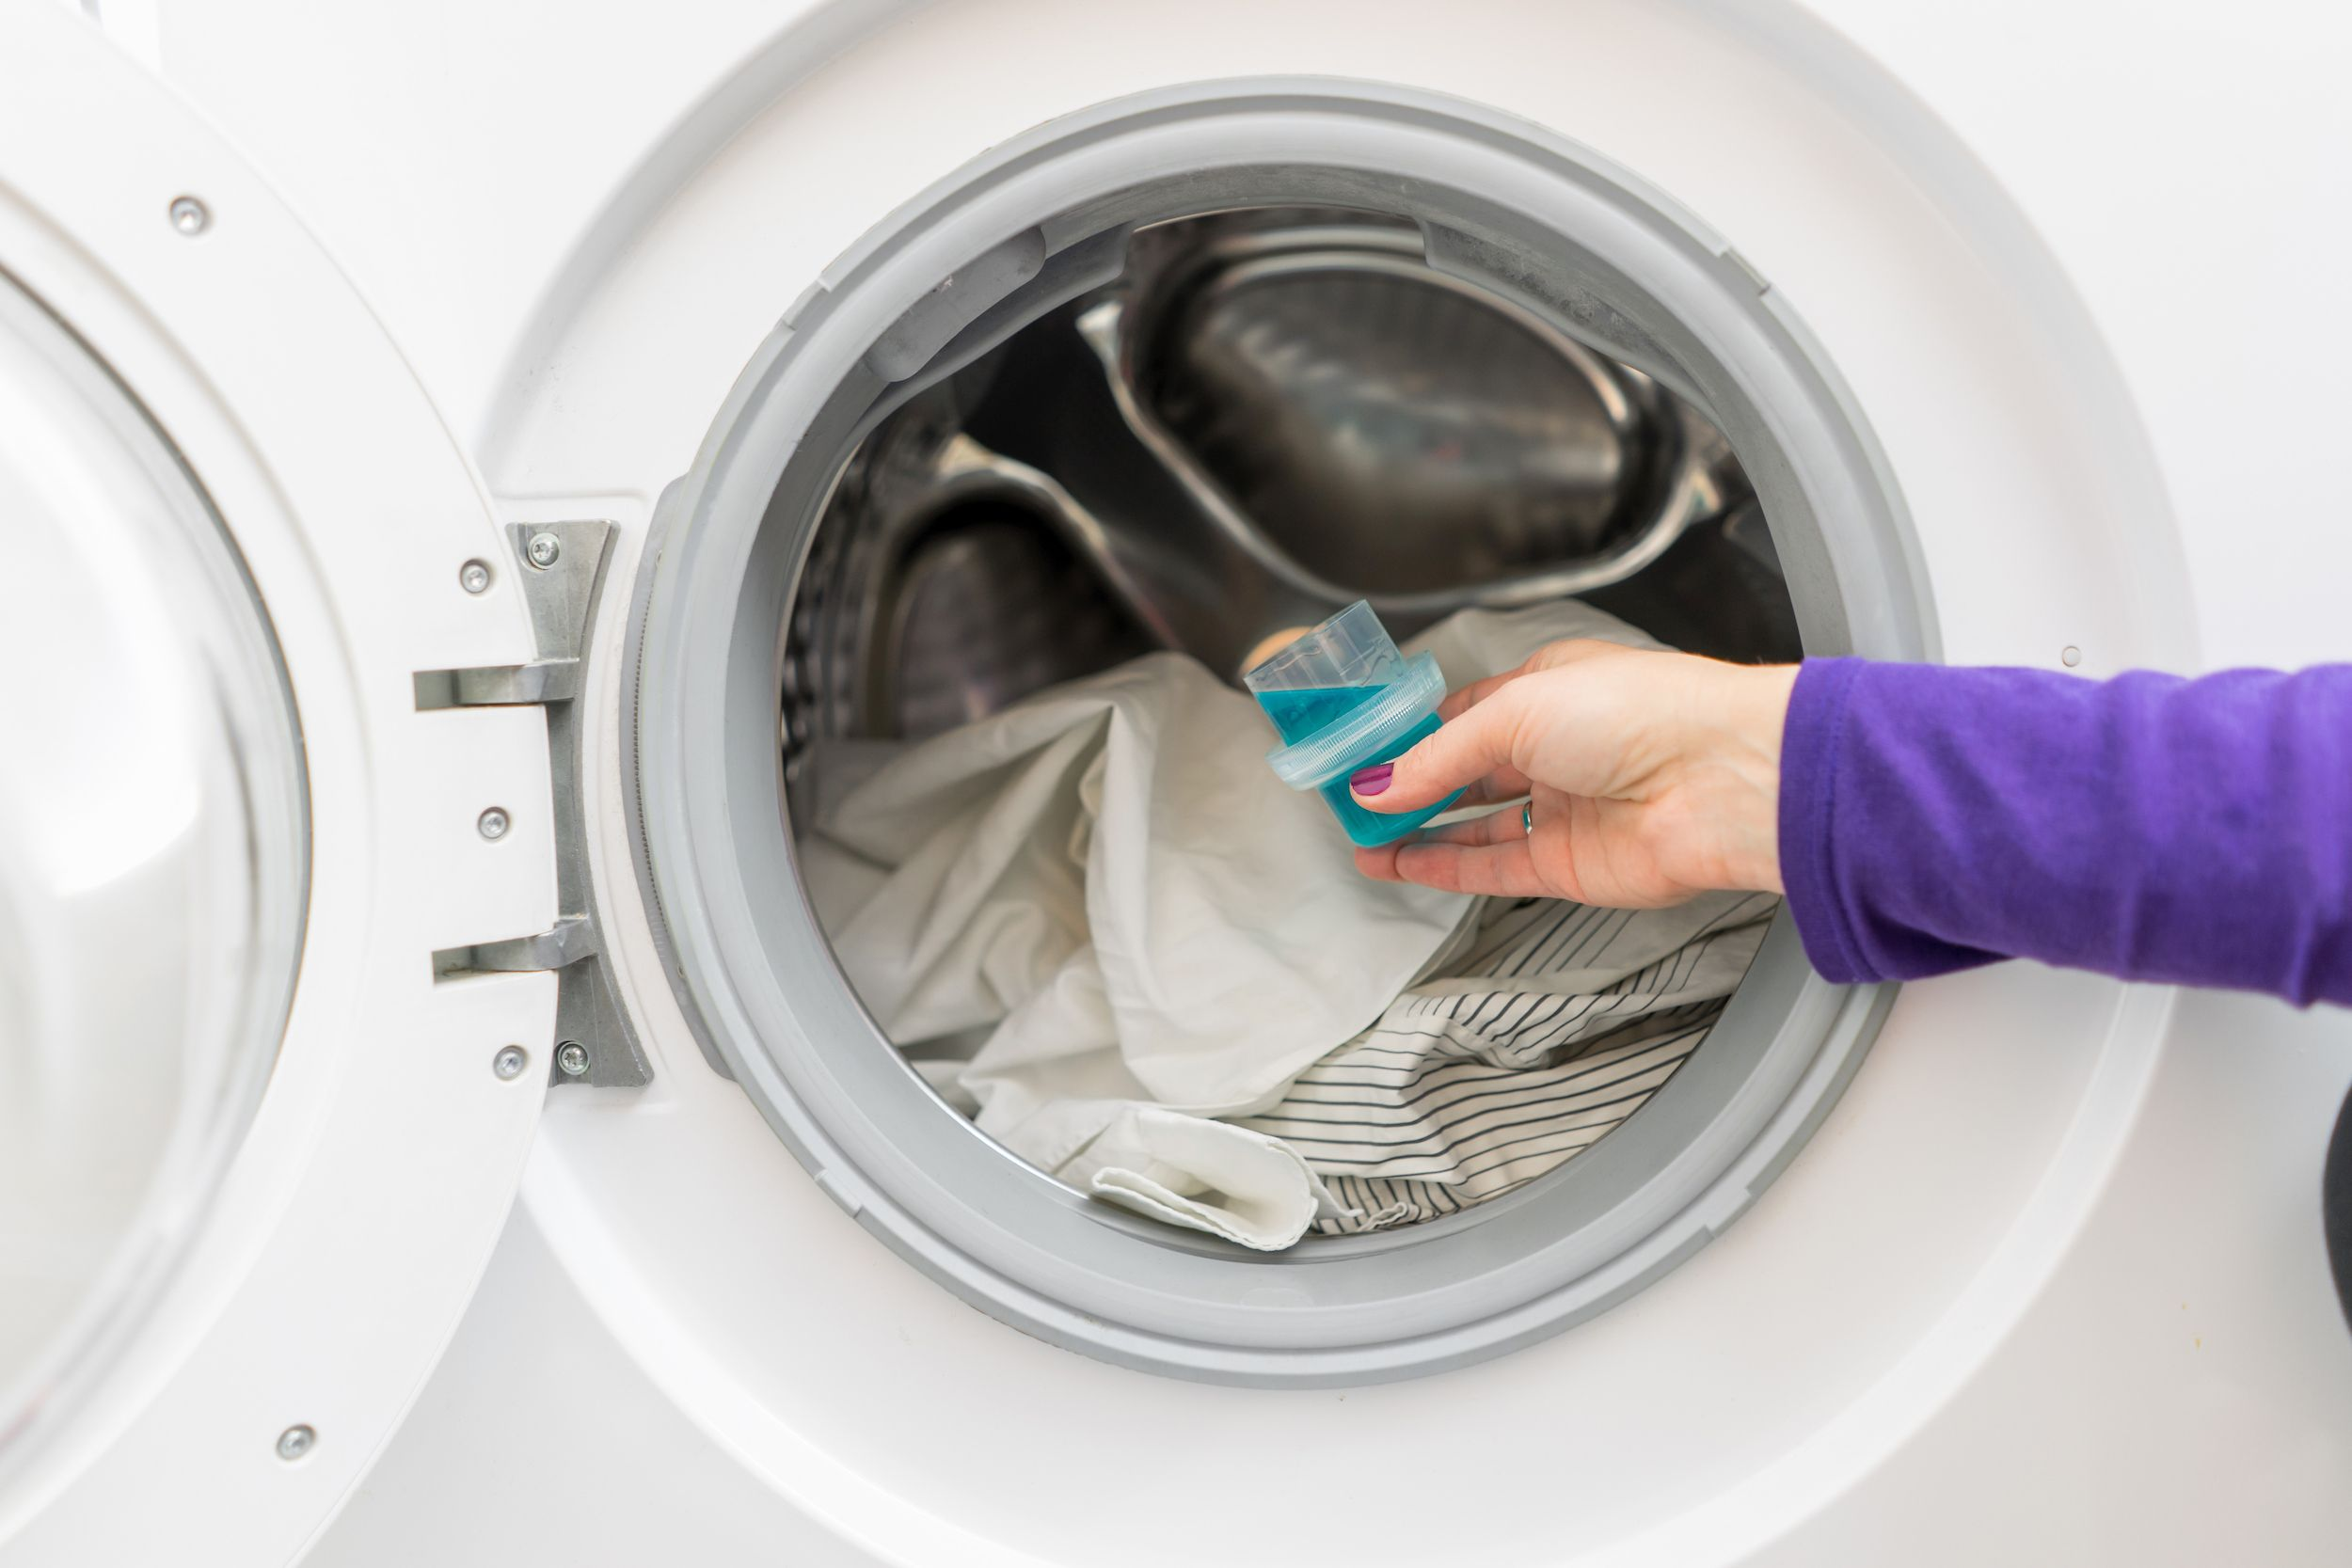 How To Make Your Clothes Smell Good In The Dryer the best and worst smelling laundry detergents - scented